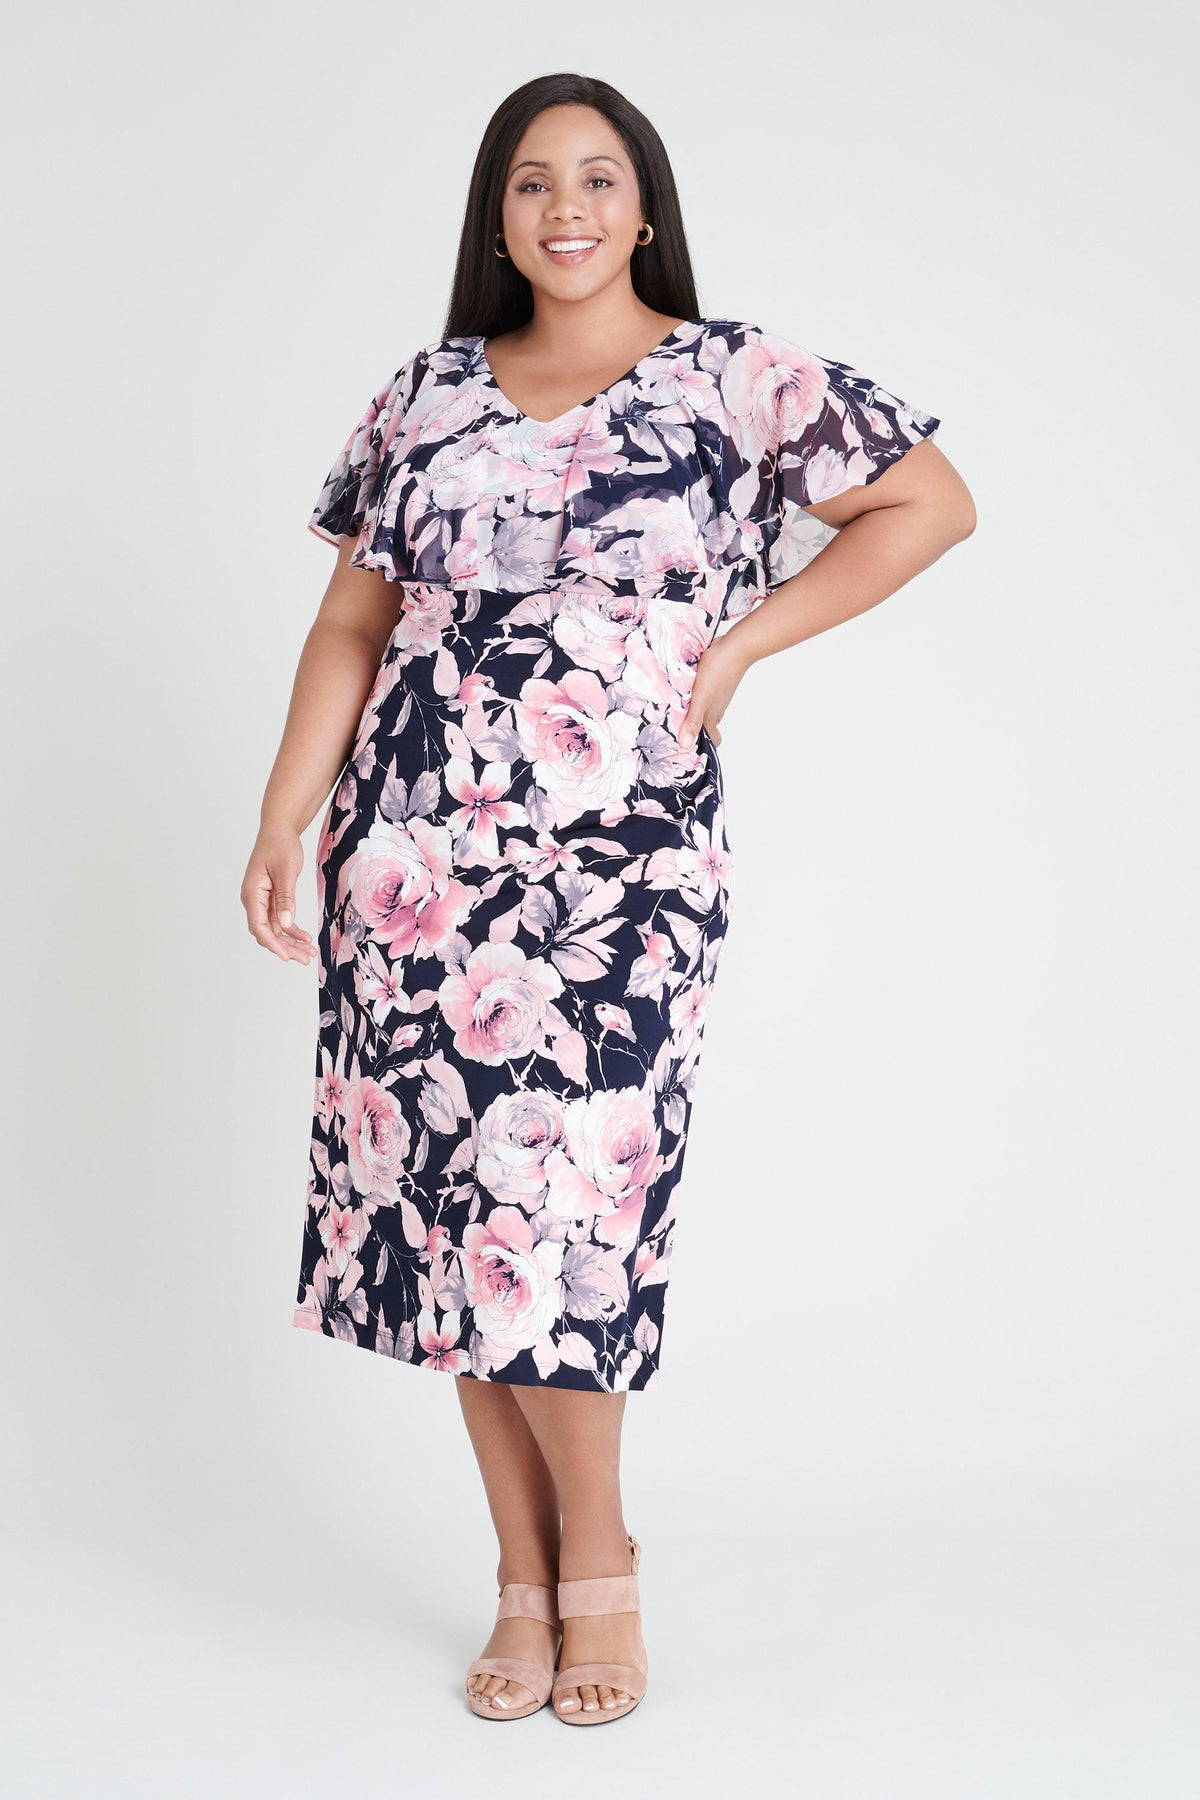 Woman posing wearing Navy/Mauve Sunny Navy & Mauve Floral Print Mixi Dress from Connected Apparel